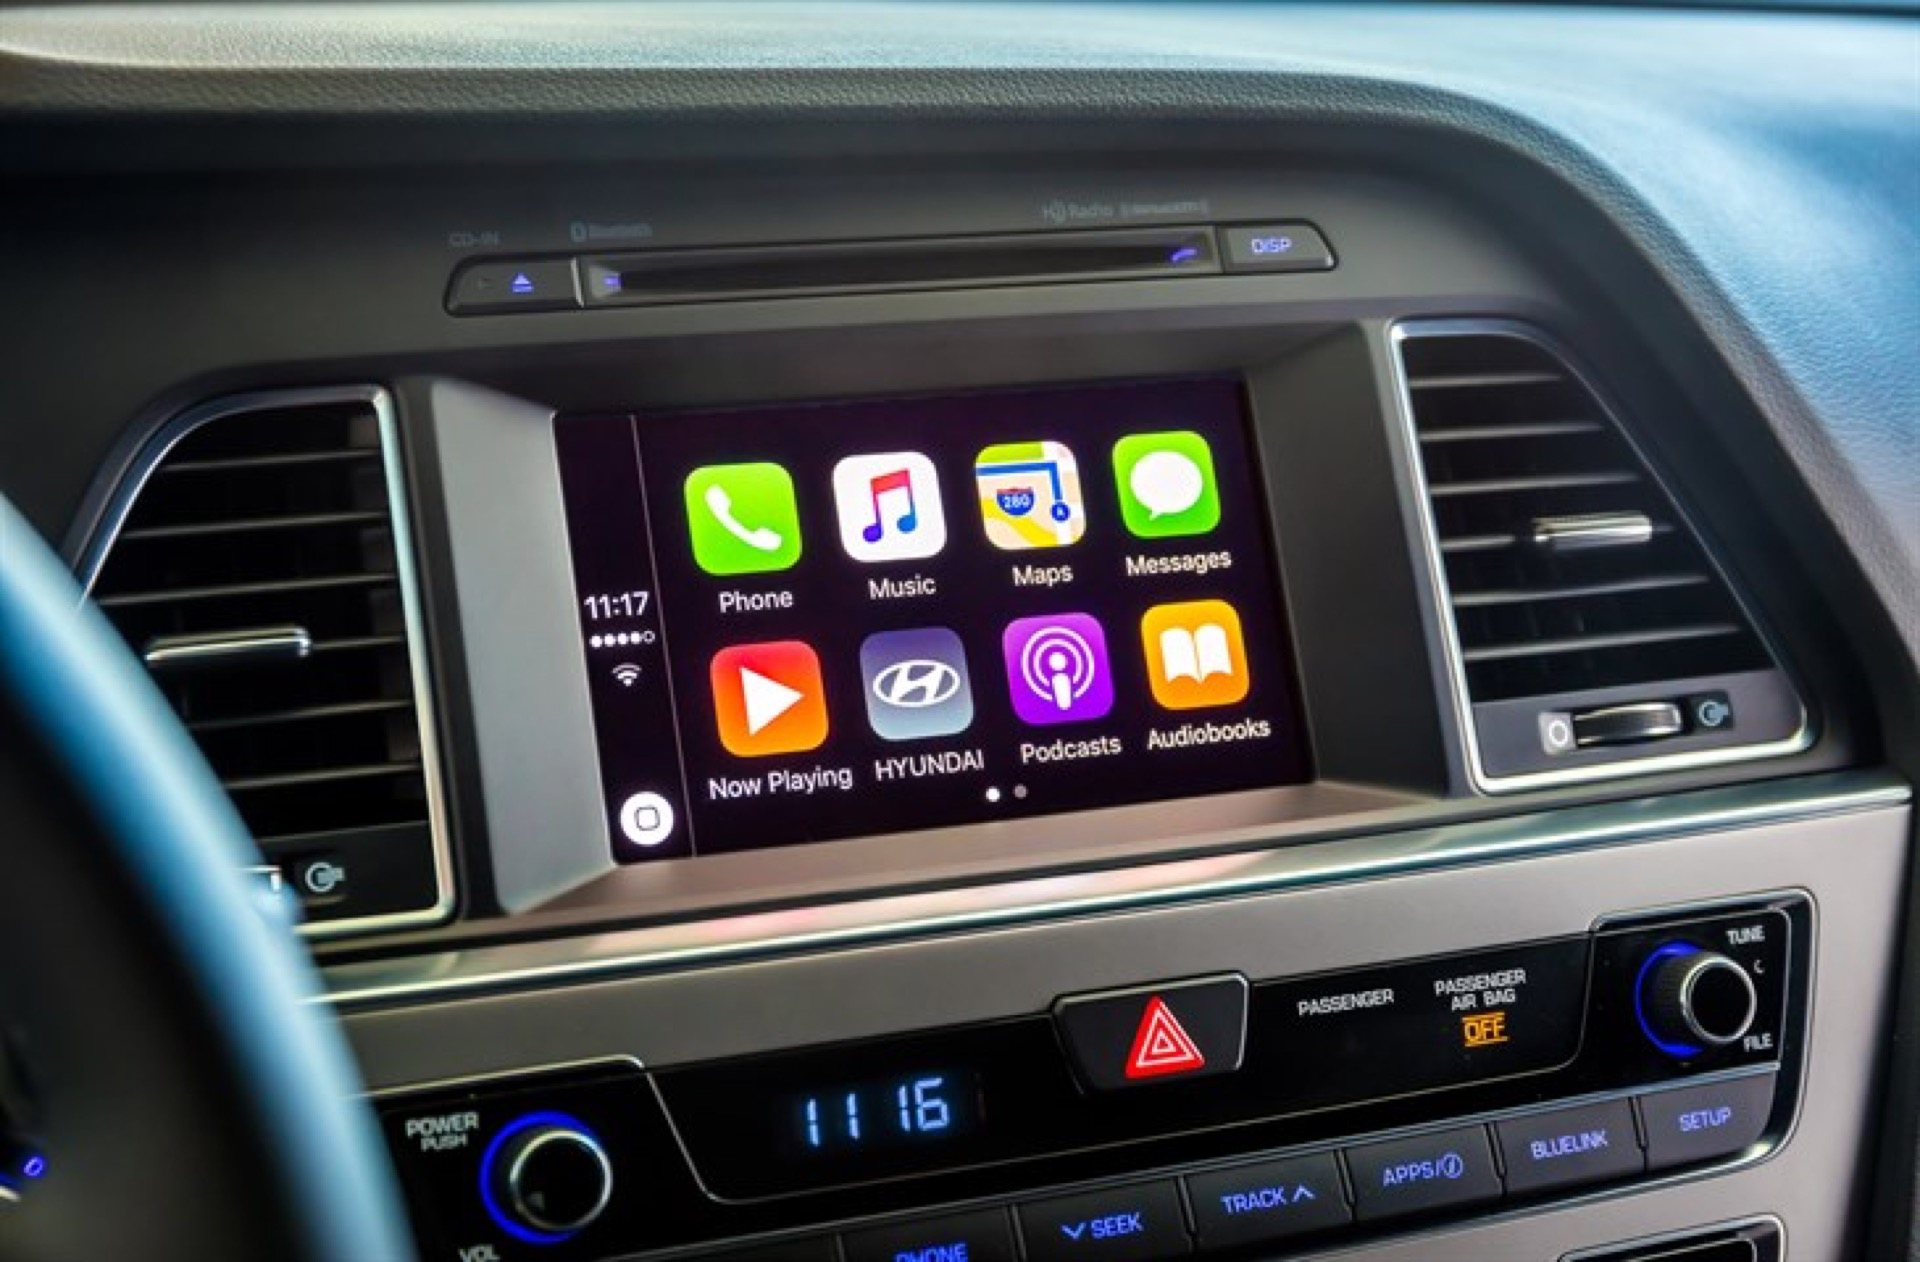 Audi Of Atlanta >> Hyundai enables DIY CarPlay, Android Auto upgrades for some 2015-2016 models